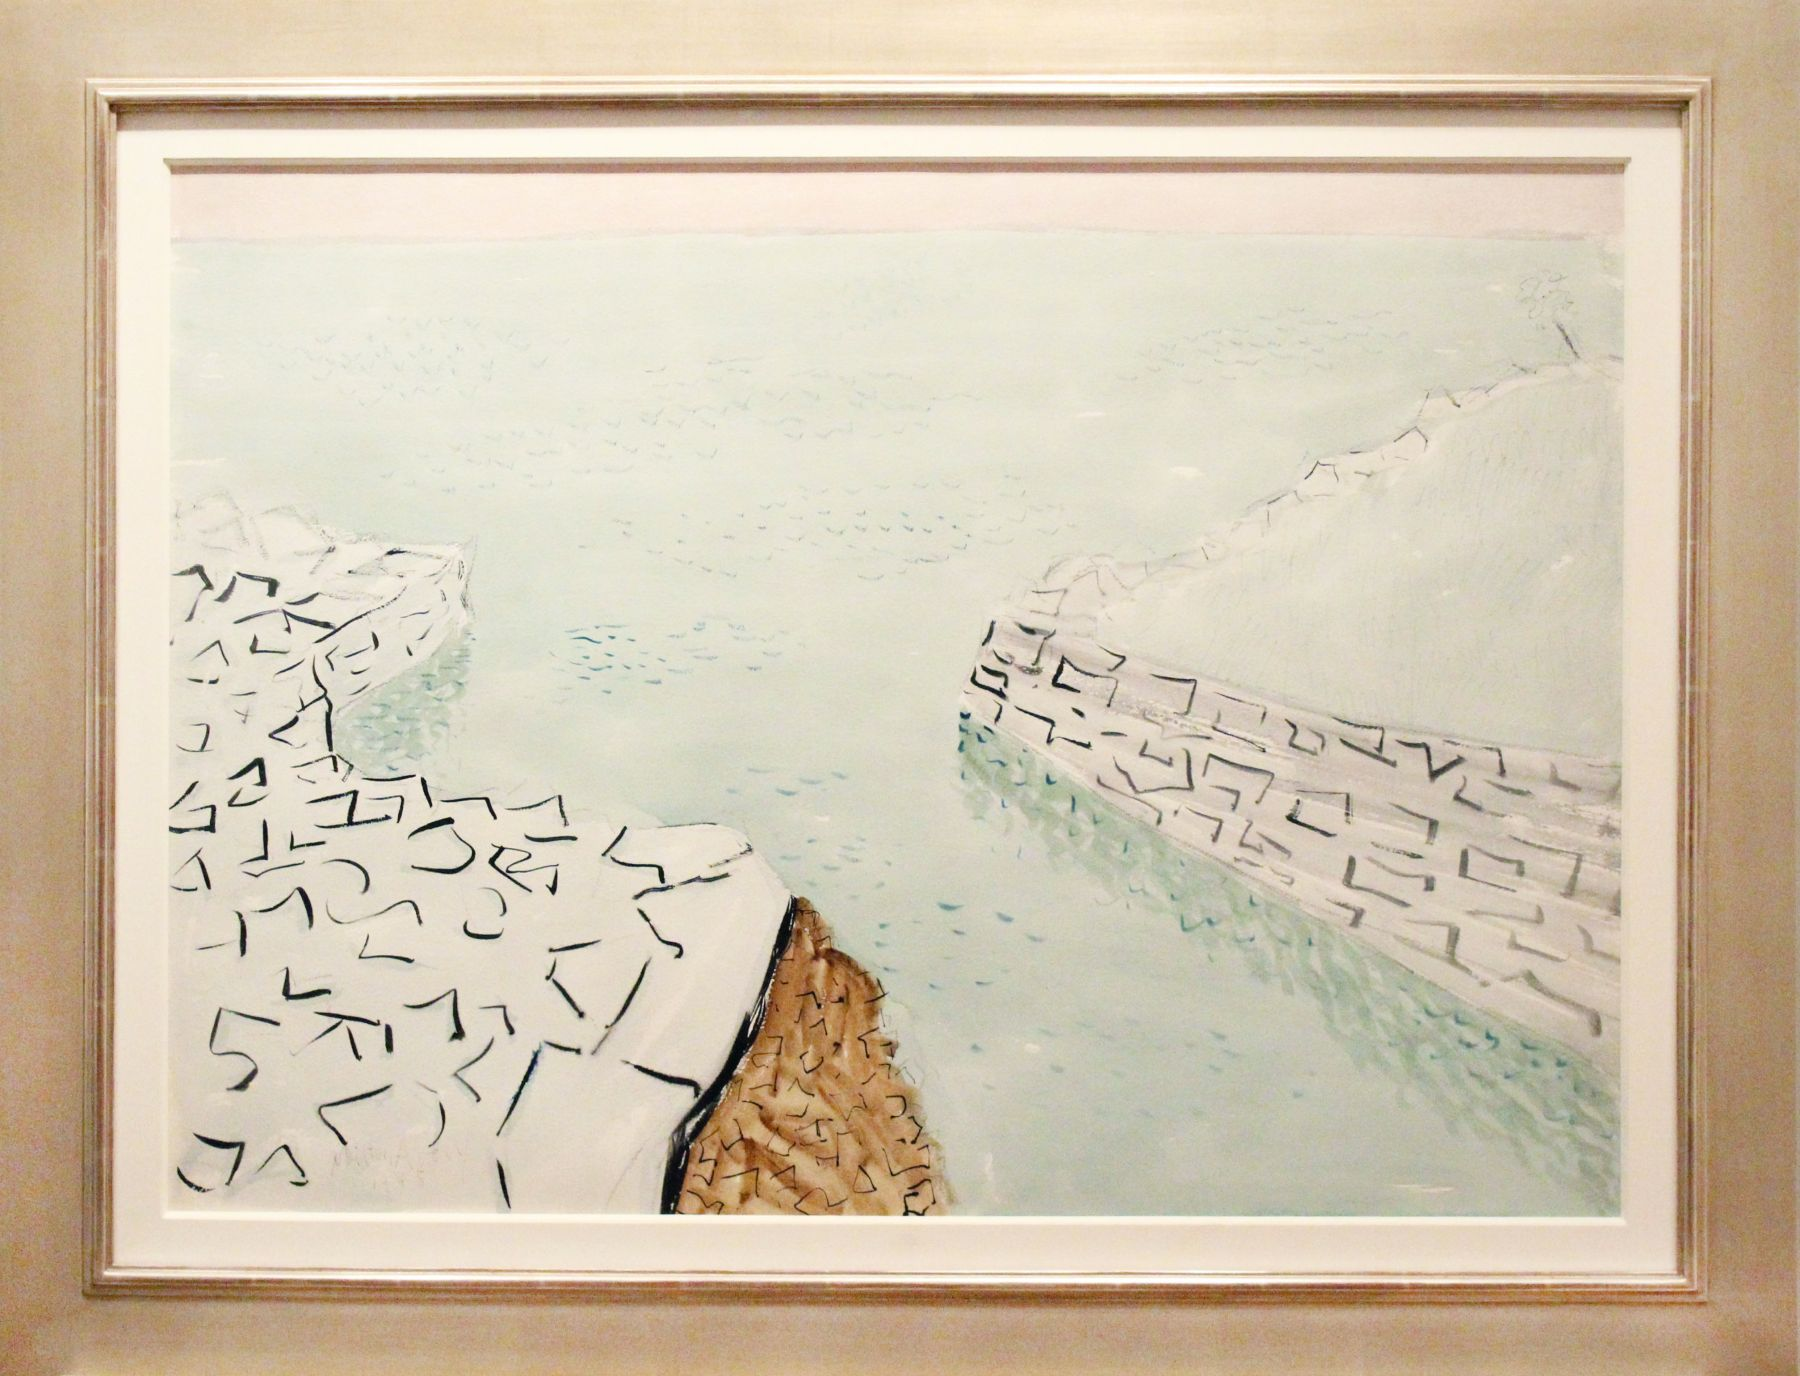 Milton Avery, Sea Walls, 1945